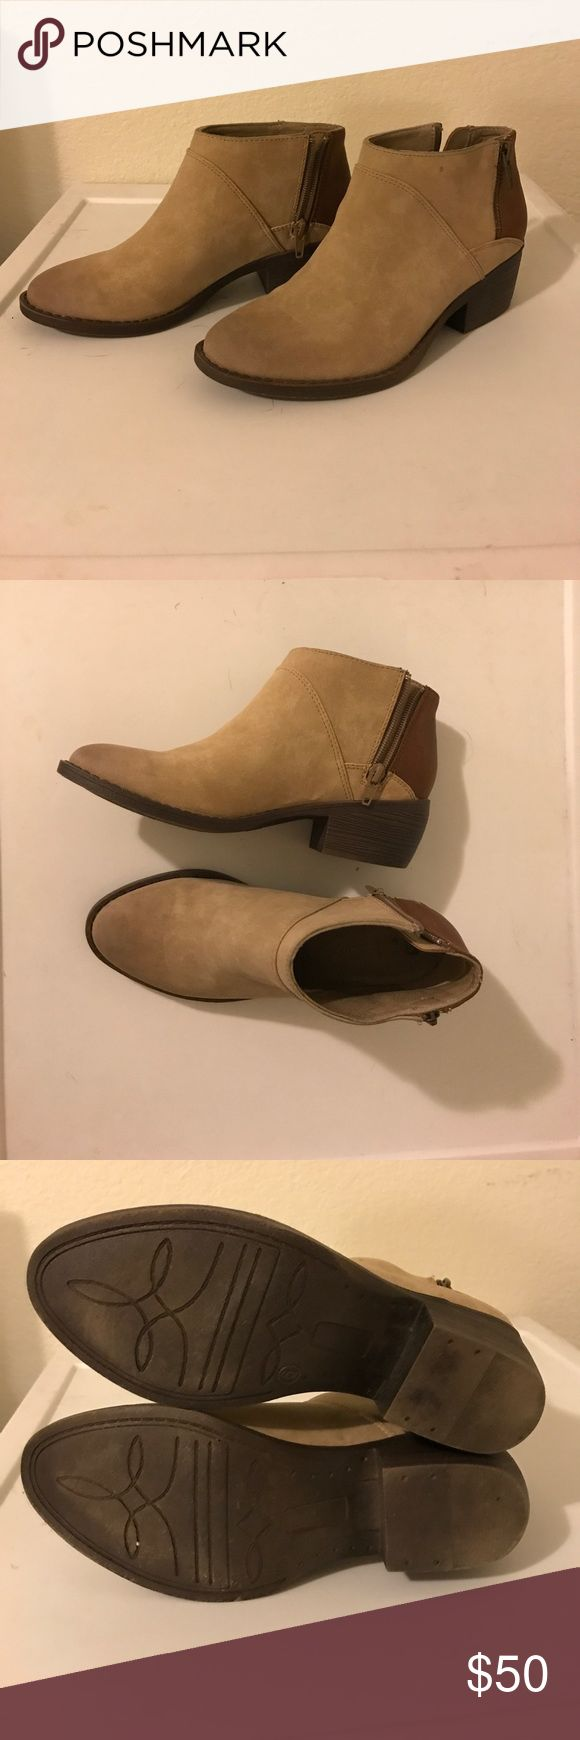 BC Footwear Ankle Booties Tan + Brown ankle boots faux leather, lightly worn, selling because they fit more like a 6.5 than a 6 a great low heel ankle boot that goes with everything for the fall season! BC Footwear Shoes Ankle Boots & Booties